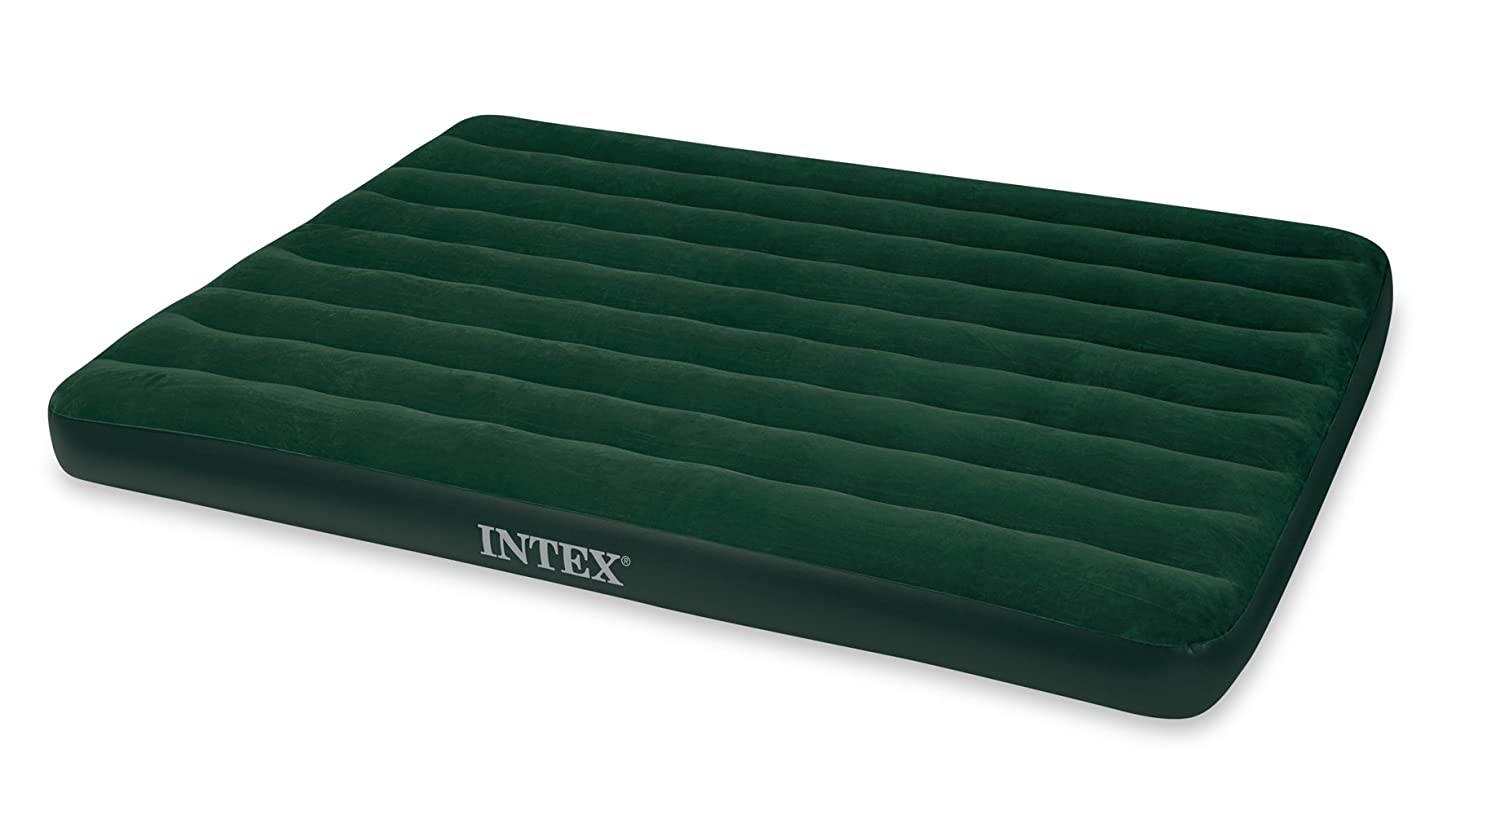 ntex Prestige Downy Airbed Kit with Hand Held Battery Pump, Queen